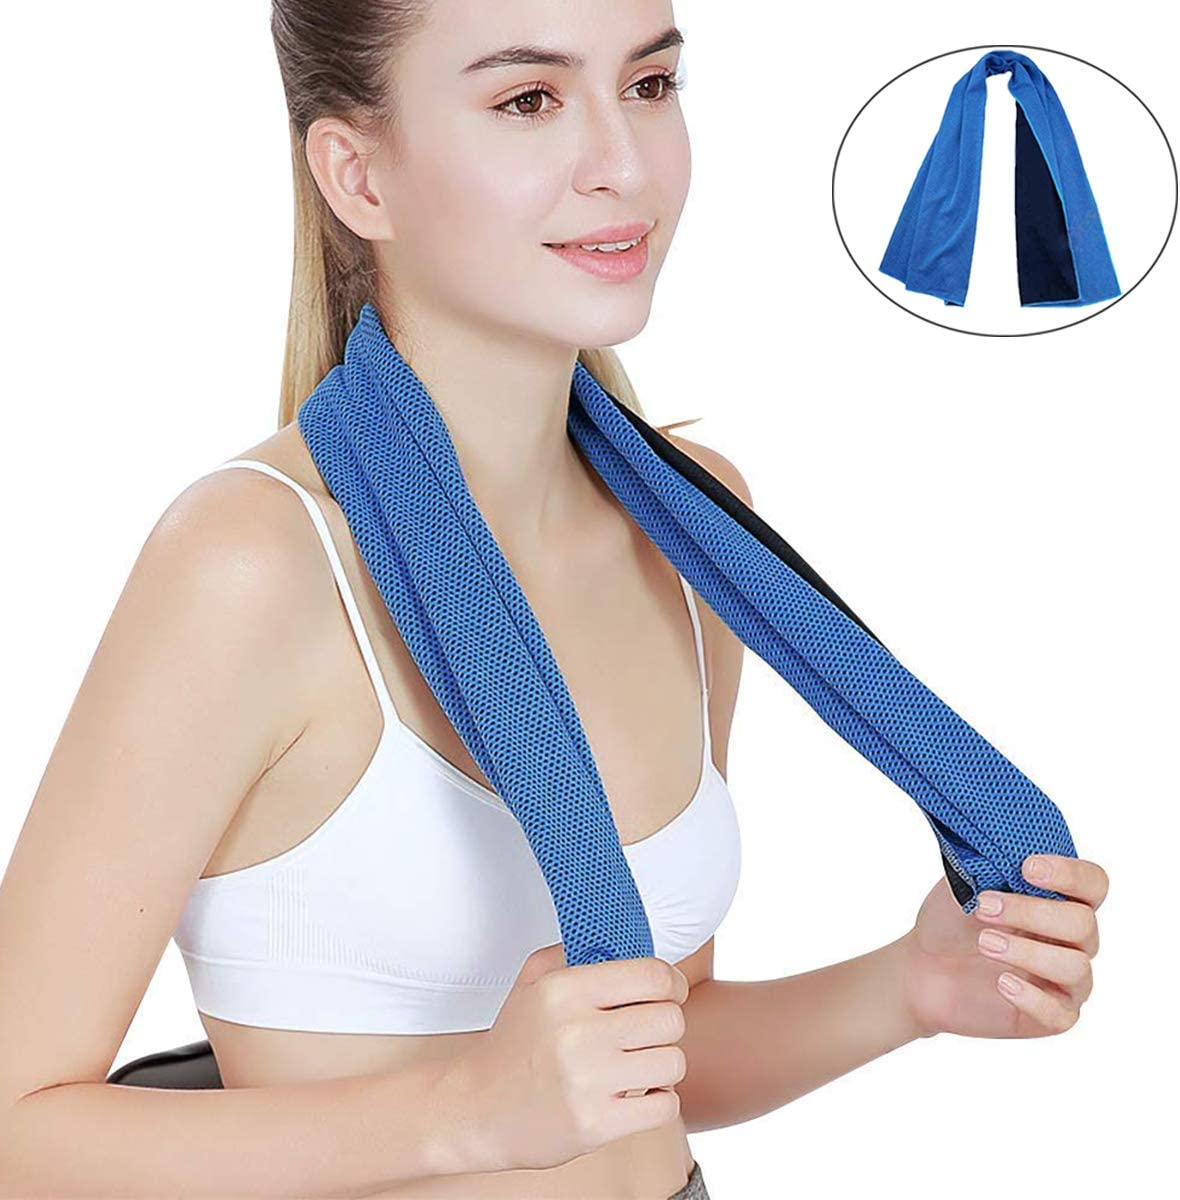 """AUBNICO Cooling Towel (40""""x12""""), Ice Towel for Neck, Soft Breathable Chilly Towel, Microfiber Towel for Yoga, Sport, Running, Gym, Workout,Camping, Fitness, Workout & More Activities MJ-0003"""